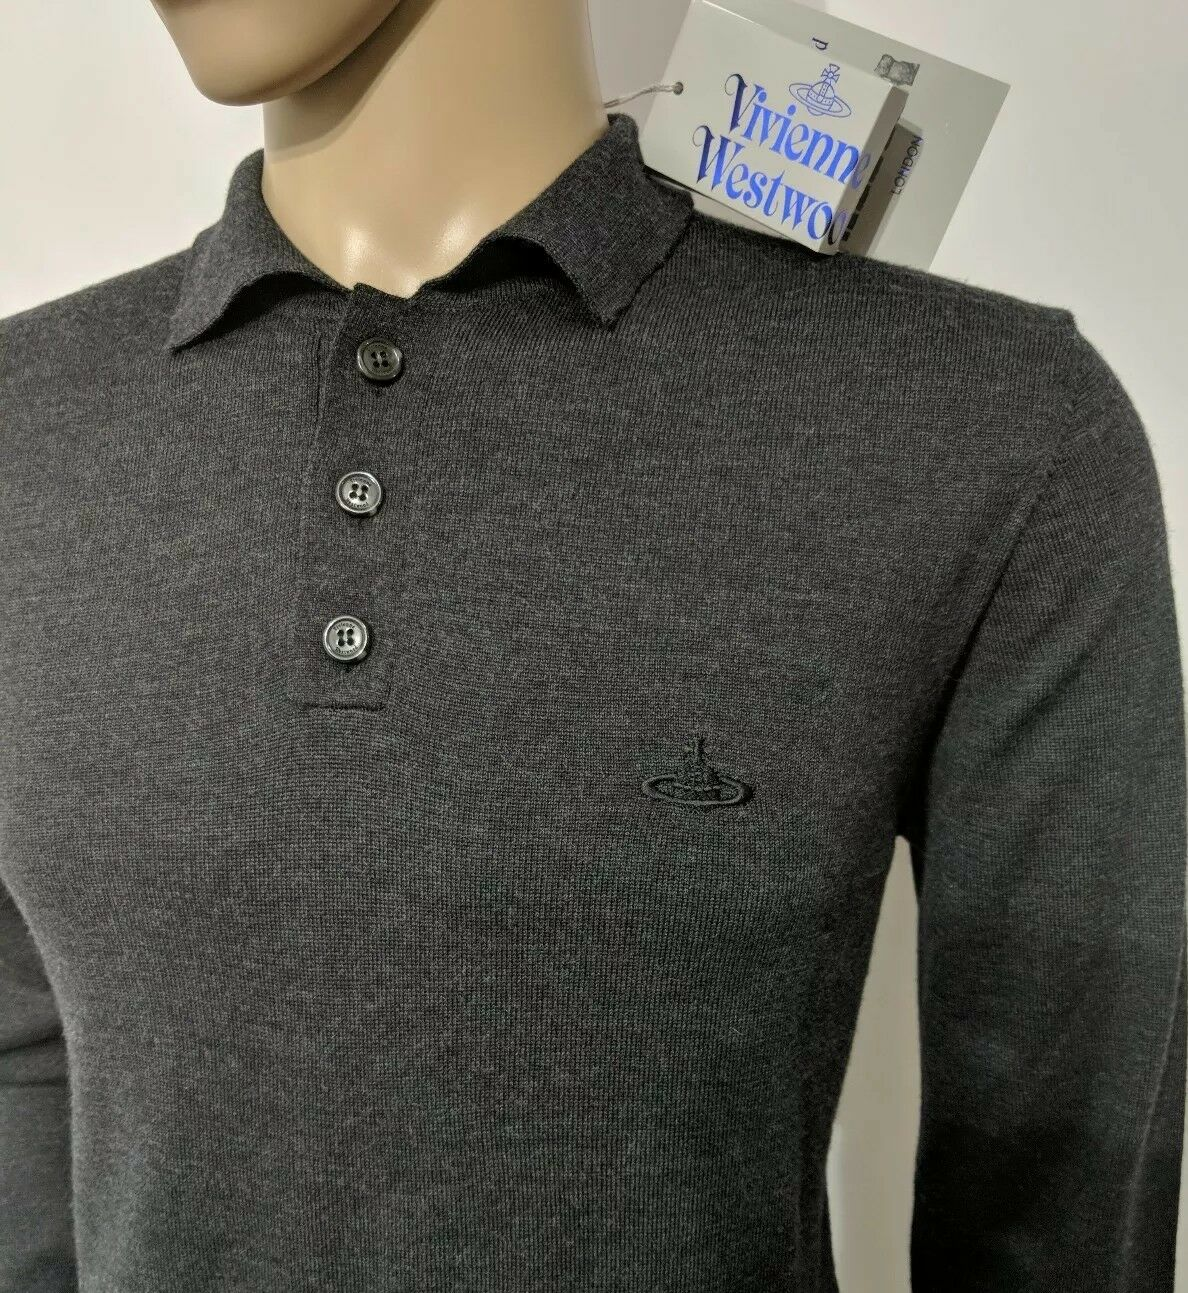 New Vivienne Westwood Mens Jumper Charcoal Pure Wool Polo Sweater Sz M RRP